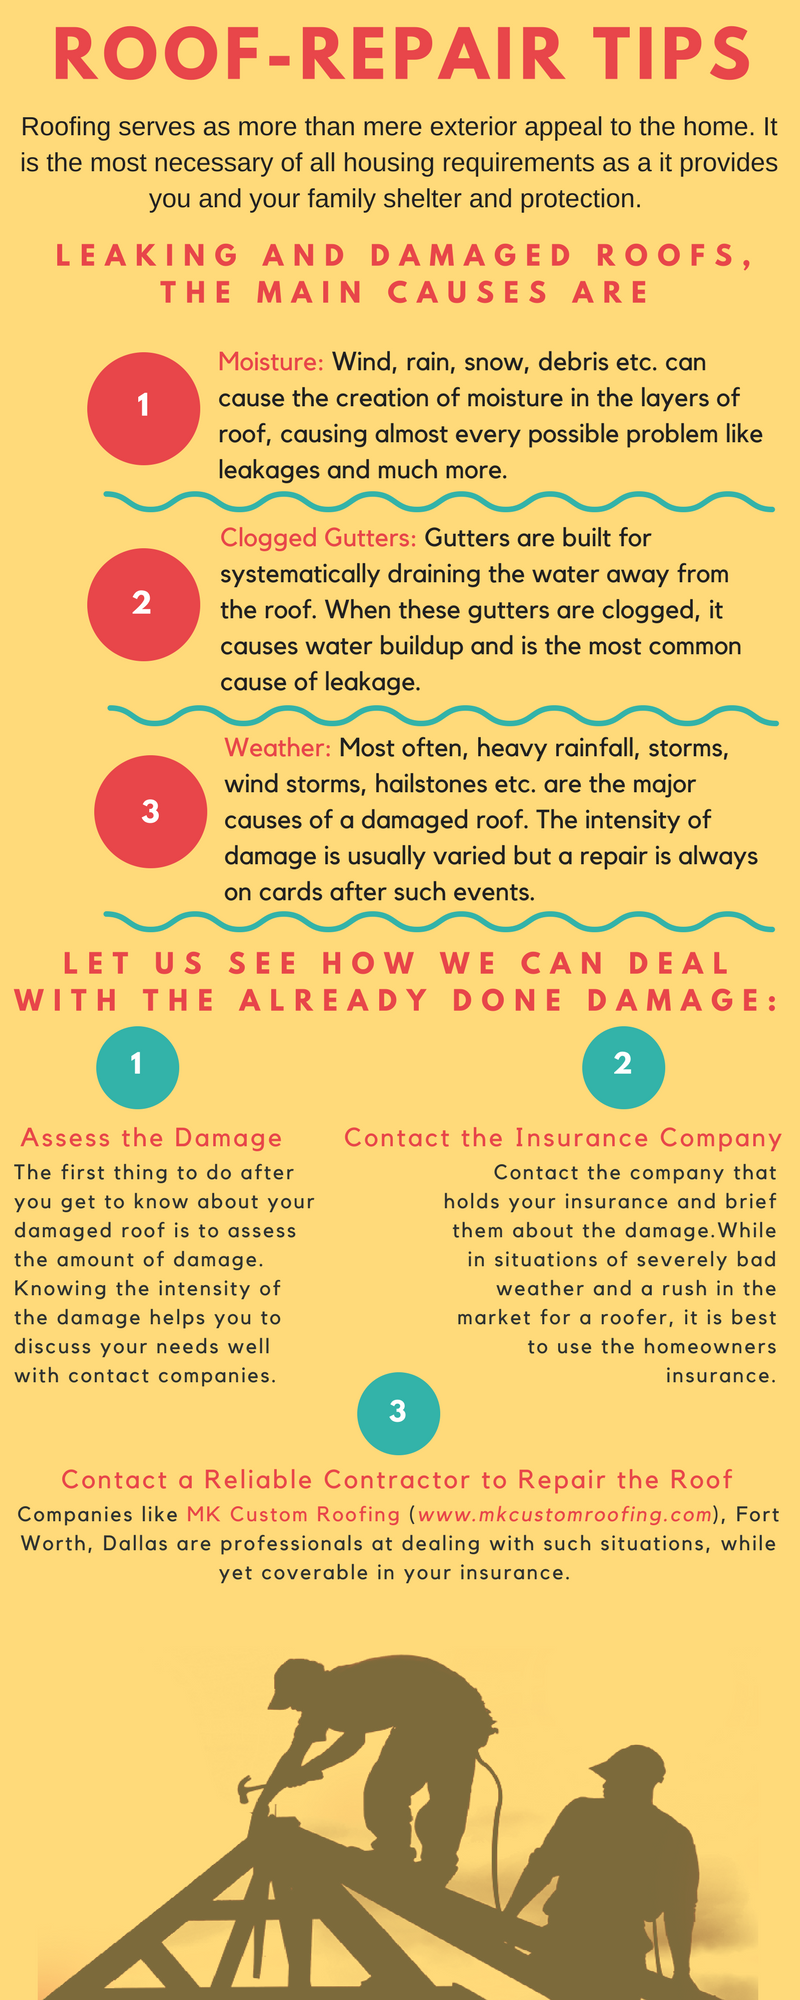 Learn How To Troubleshoot Roof Damages And Follow These Tips To Make Repairs Keep Your Roof In Tip Top Shape With Thes Roof Repair Roofing Roofing Contractors